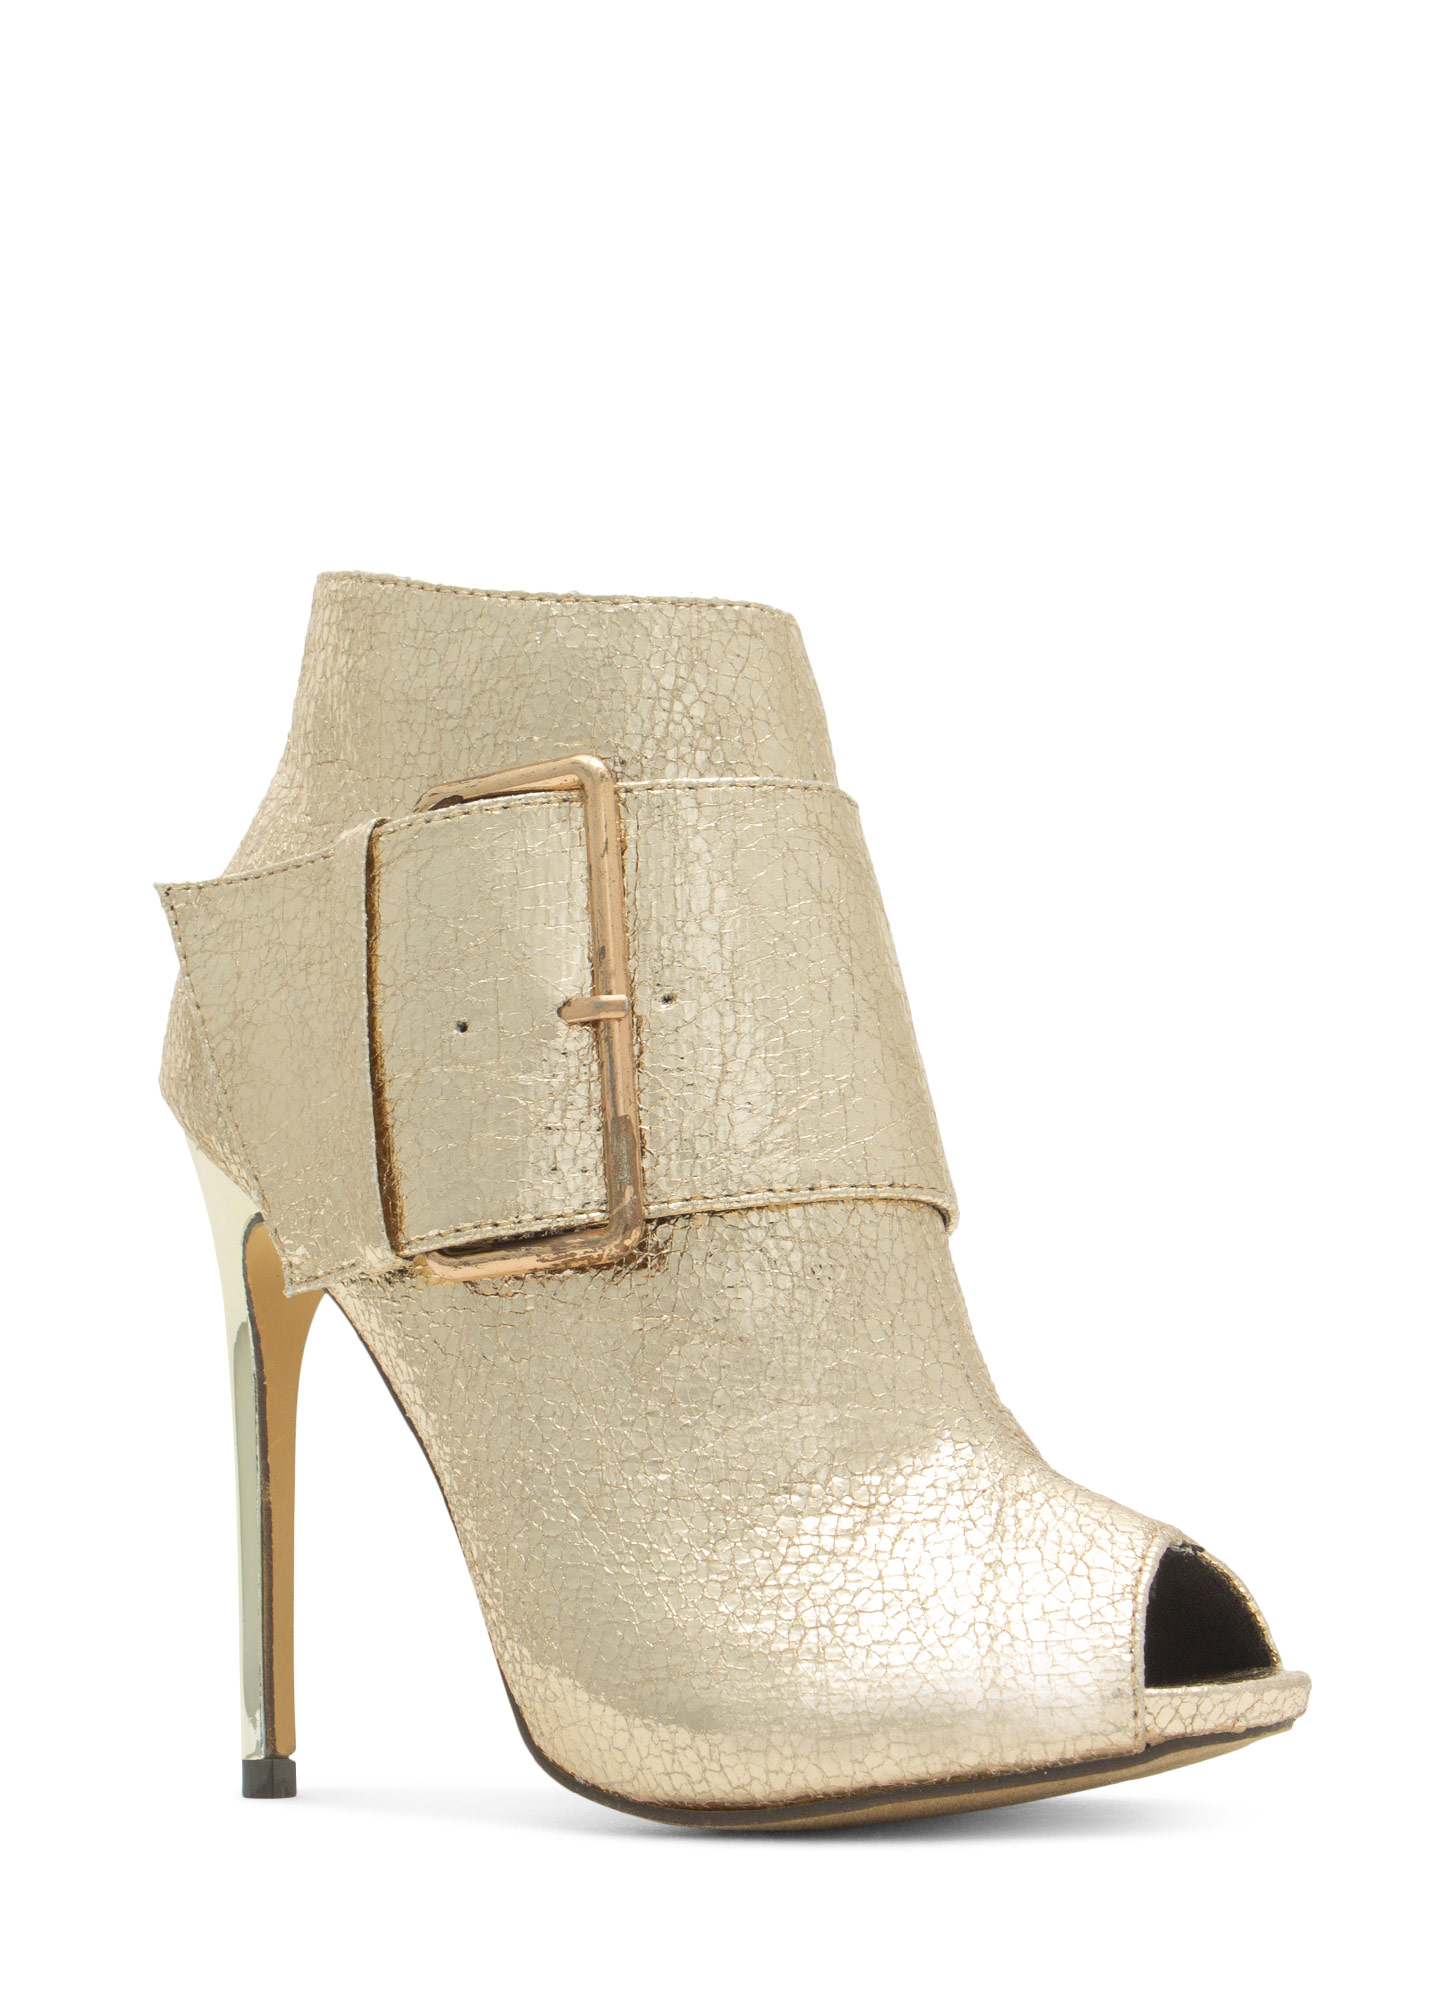 Oversized Buckle Peep-Toe Booties GOLD